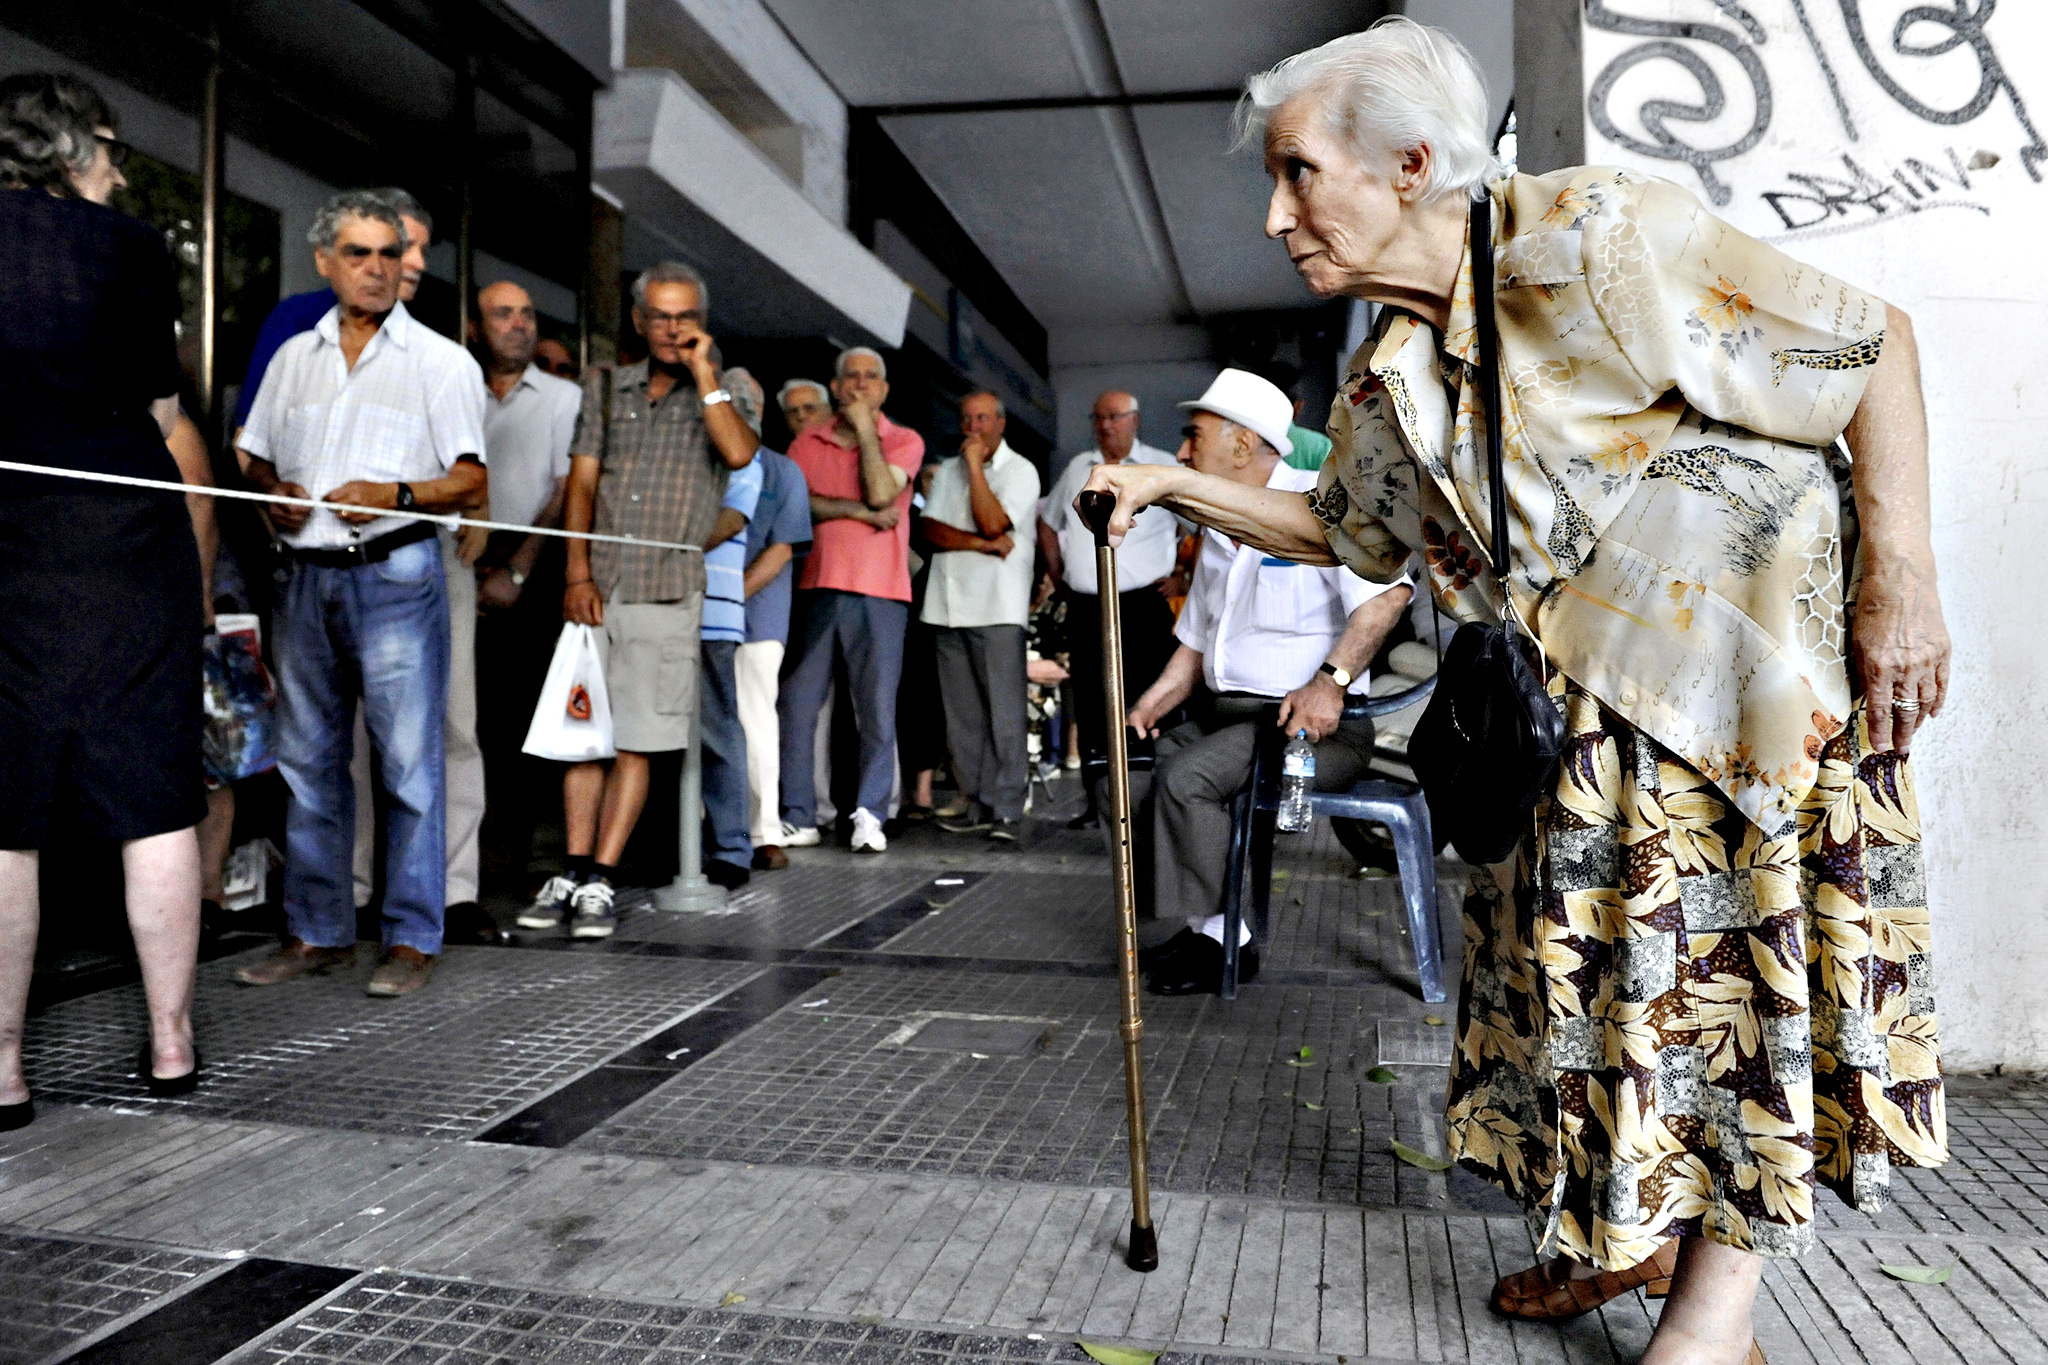 A pensioner (R) arrives at a National Bank branch to receive part of her pension at the city of Thessaloniki, Greece July 10, 2015.The Greek parliament will give the government a mandate to negotiate with creditors for a cash-for-reforms deal, the parliamentary spokesman of the ruling Syriza party told reporters on Friday